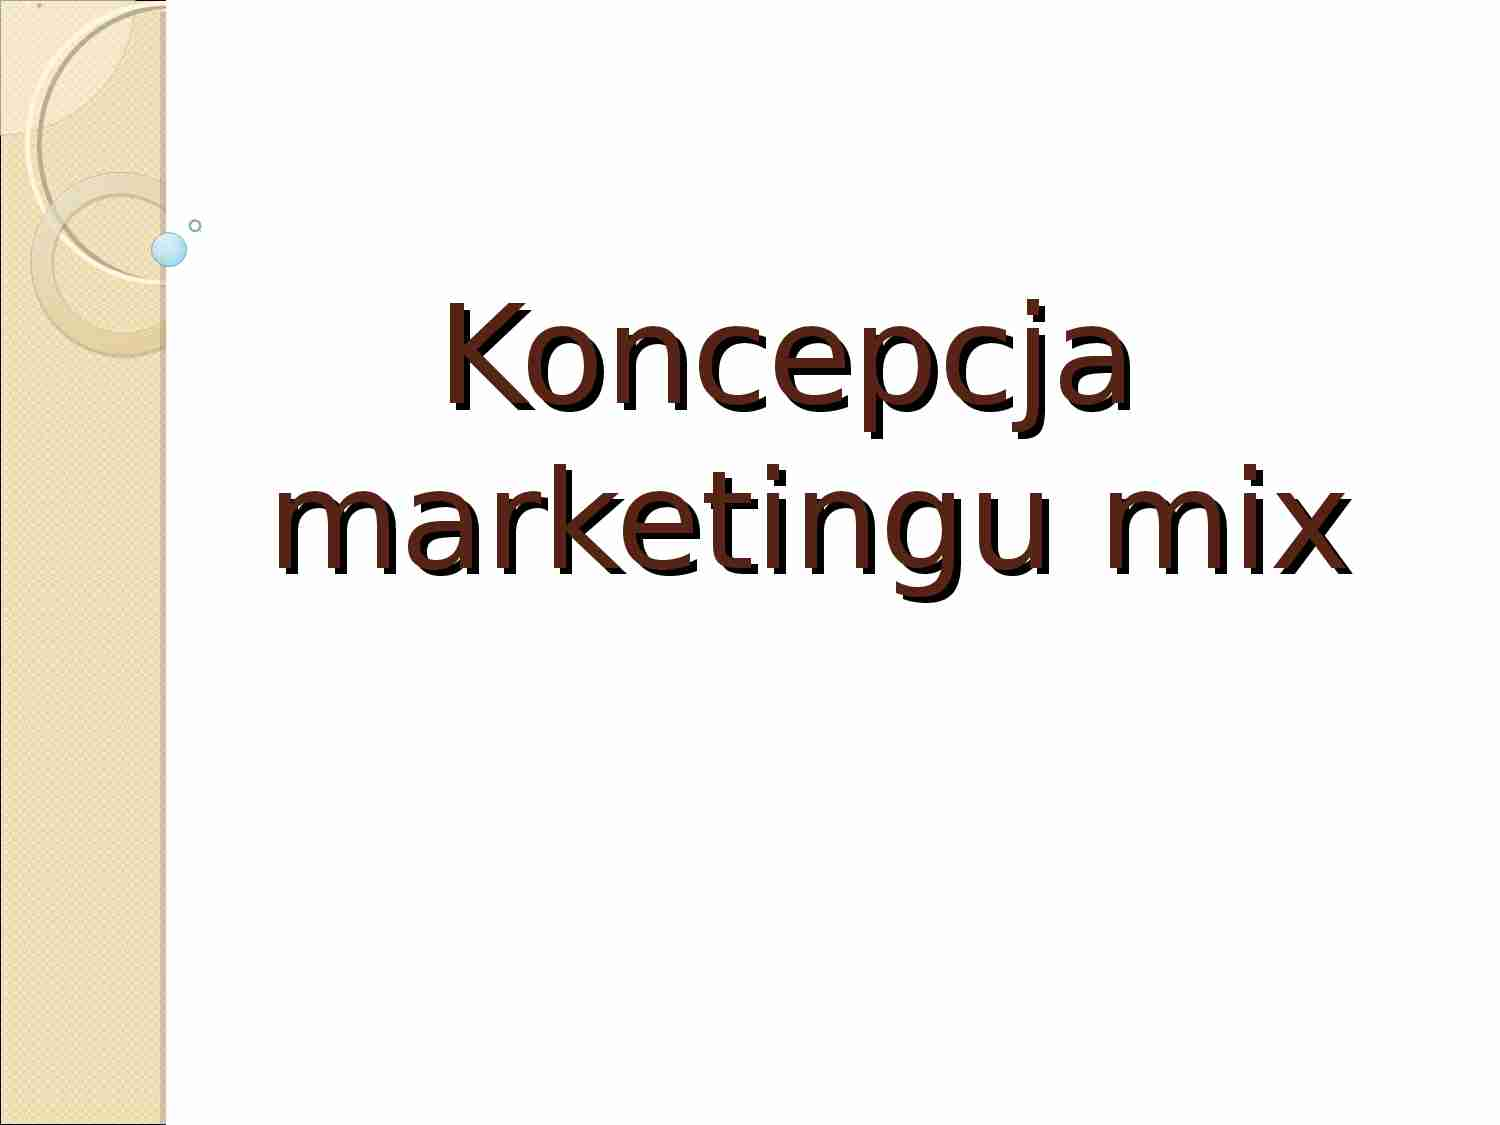 Koncepcja marketingu mix - wykład z pdstaw marketingu - strona 1